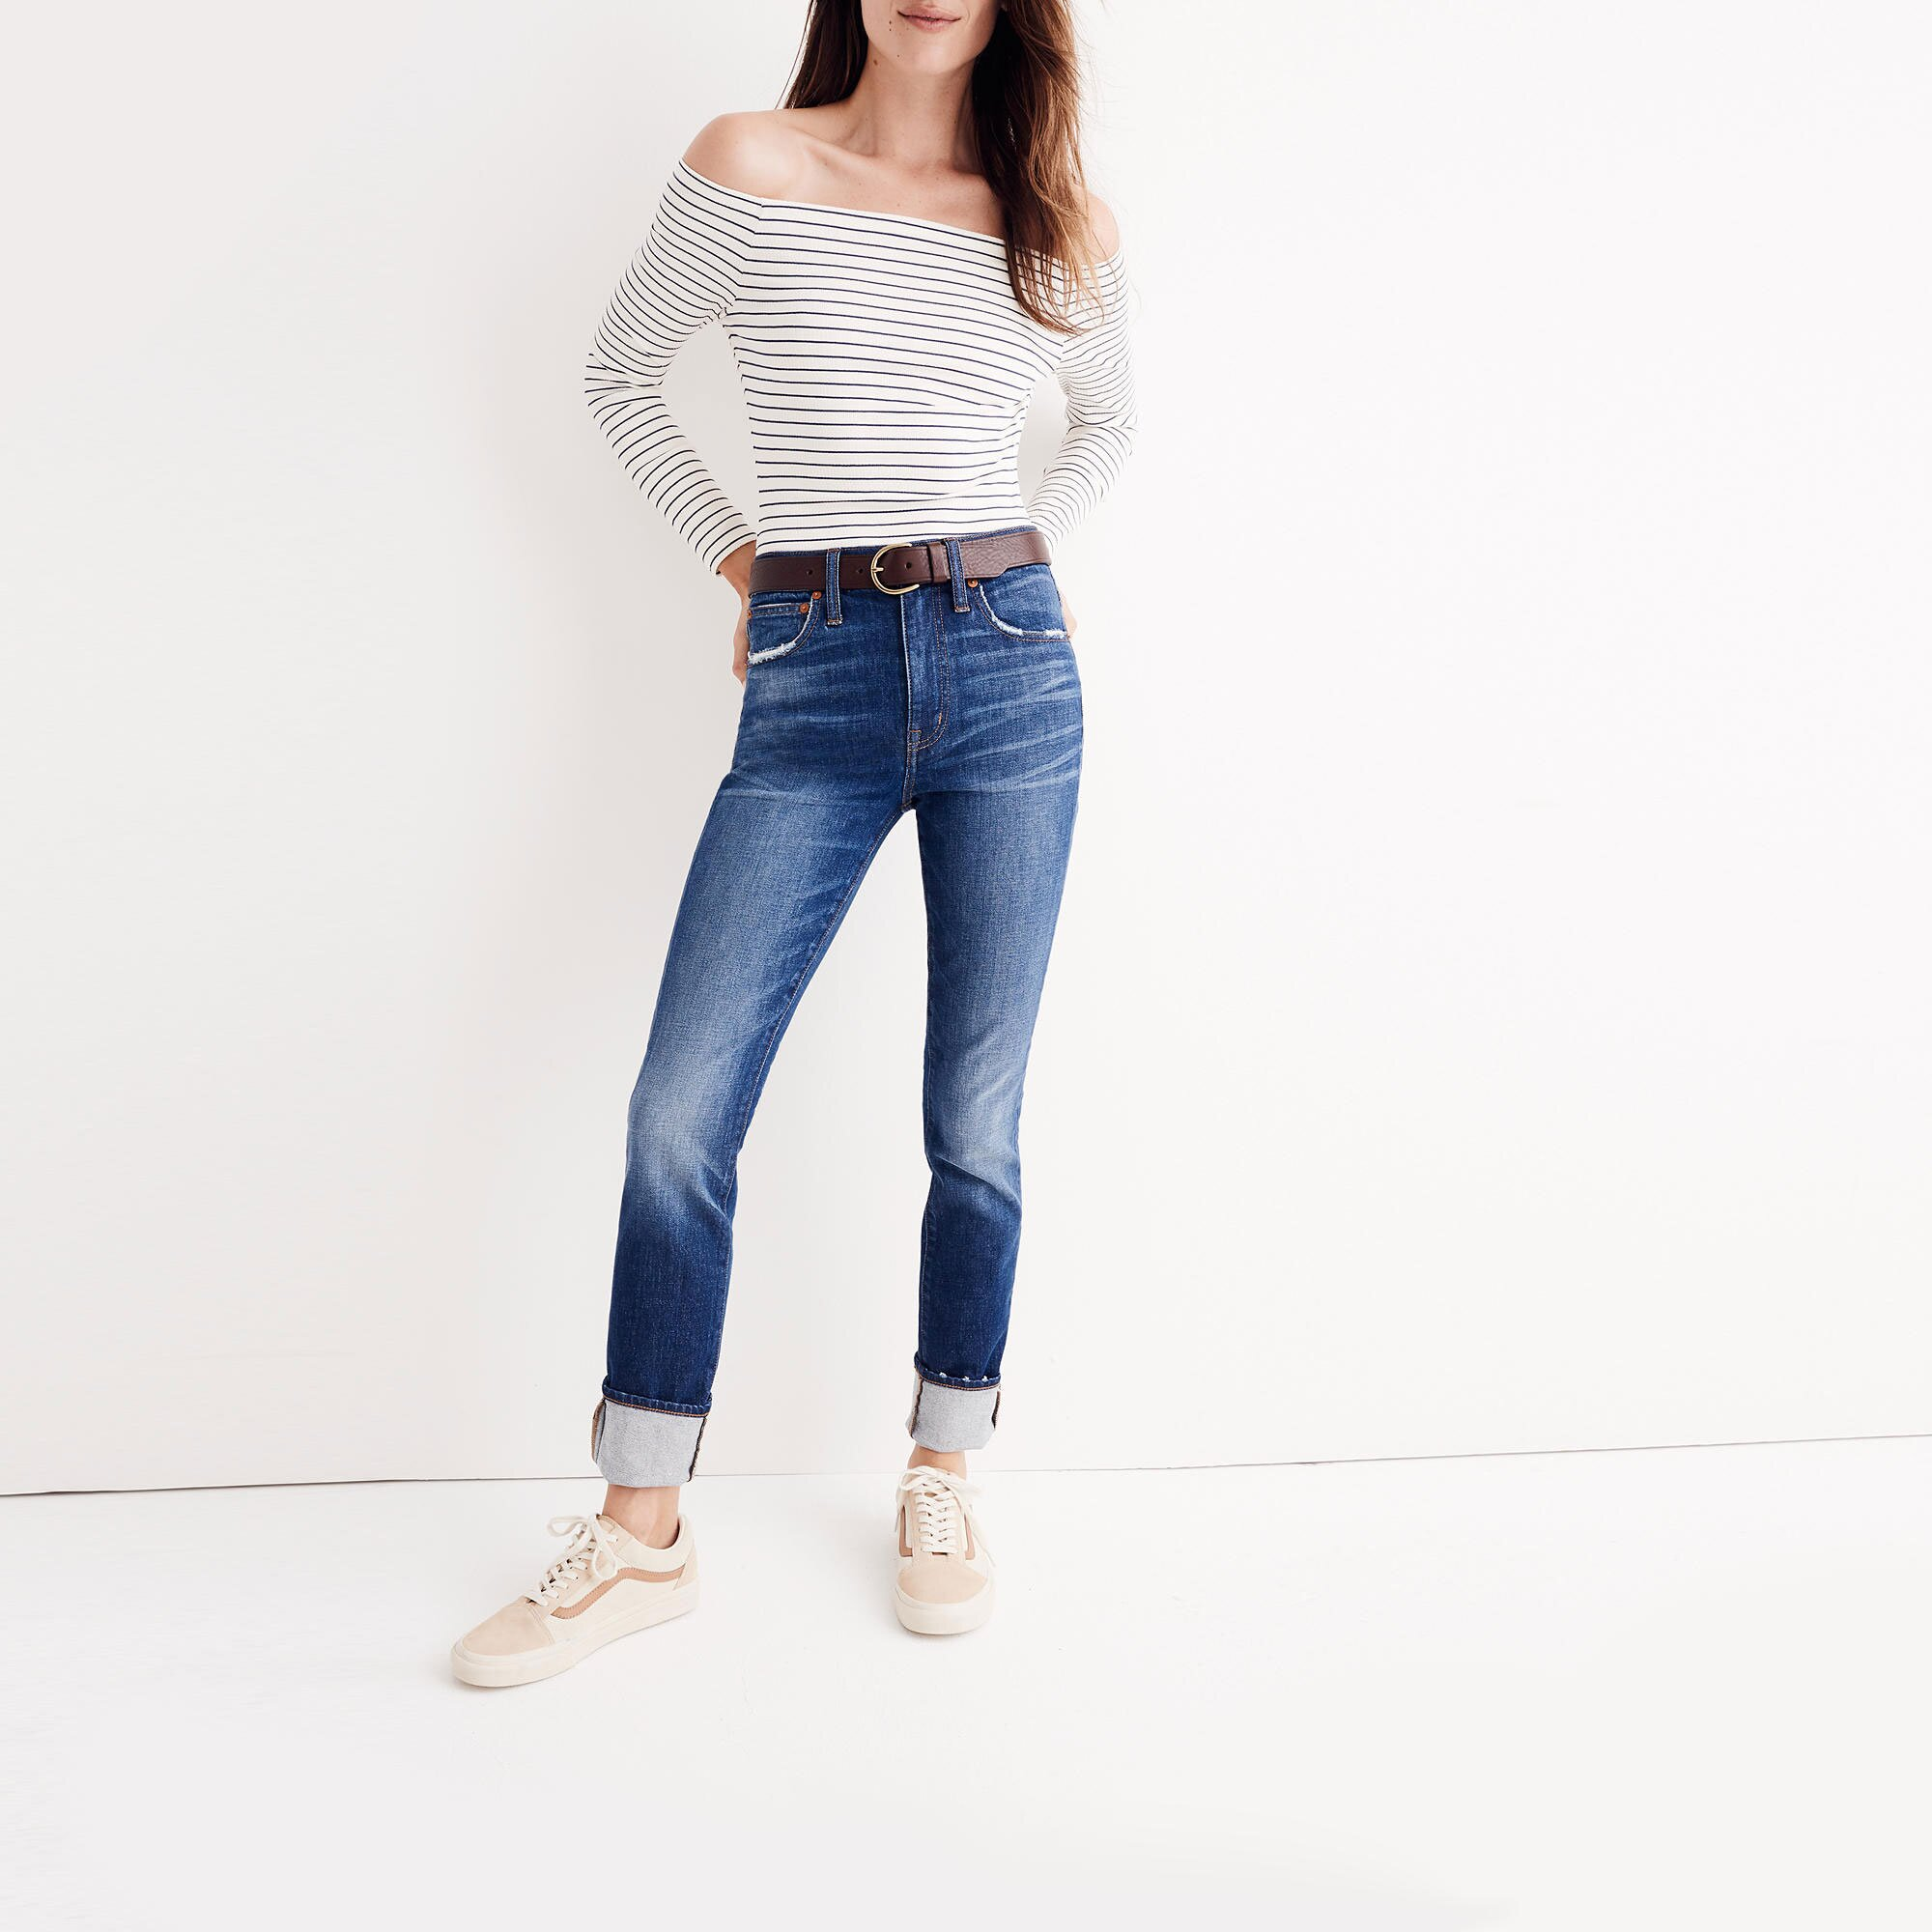 74833987ea547 The Madewell Items We re Absolutely Obsessed With